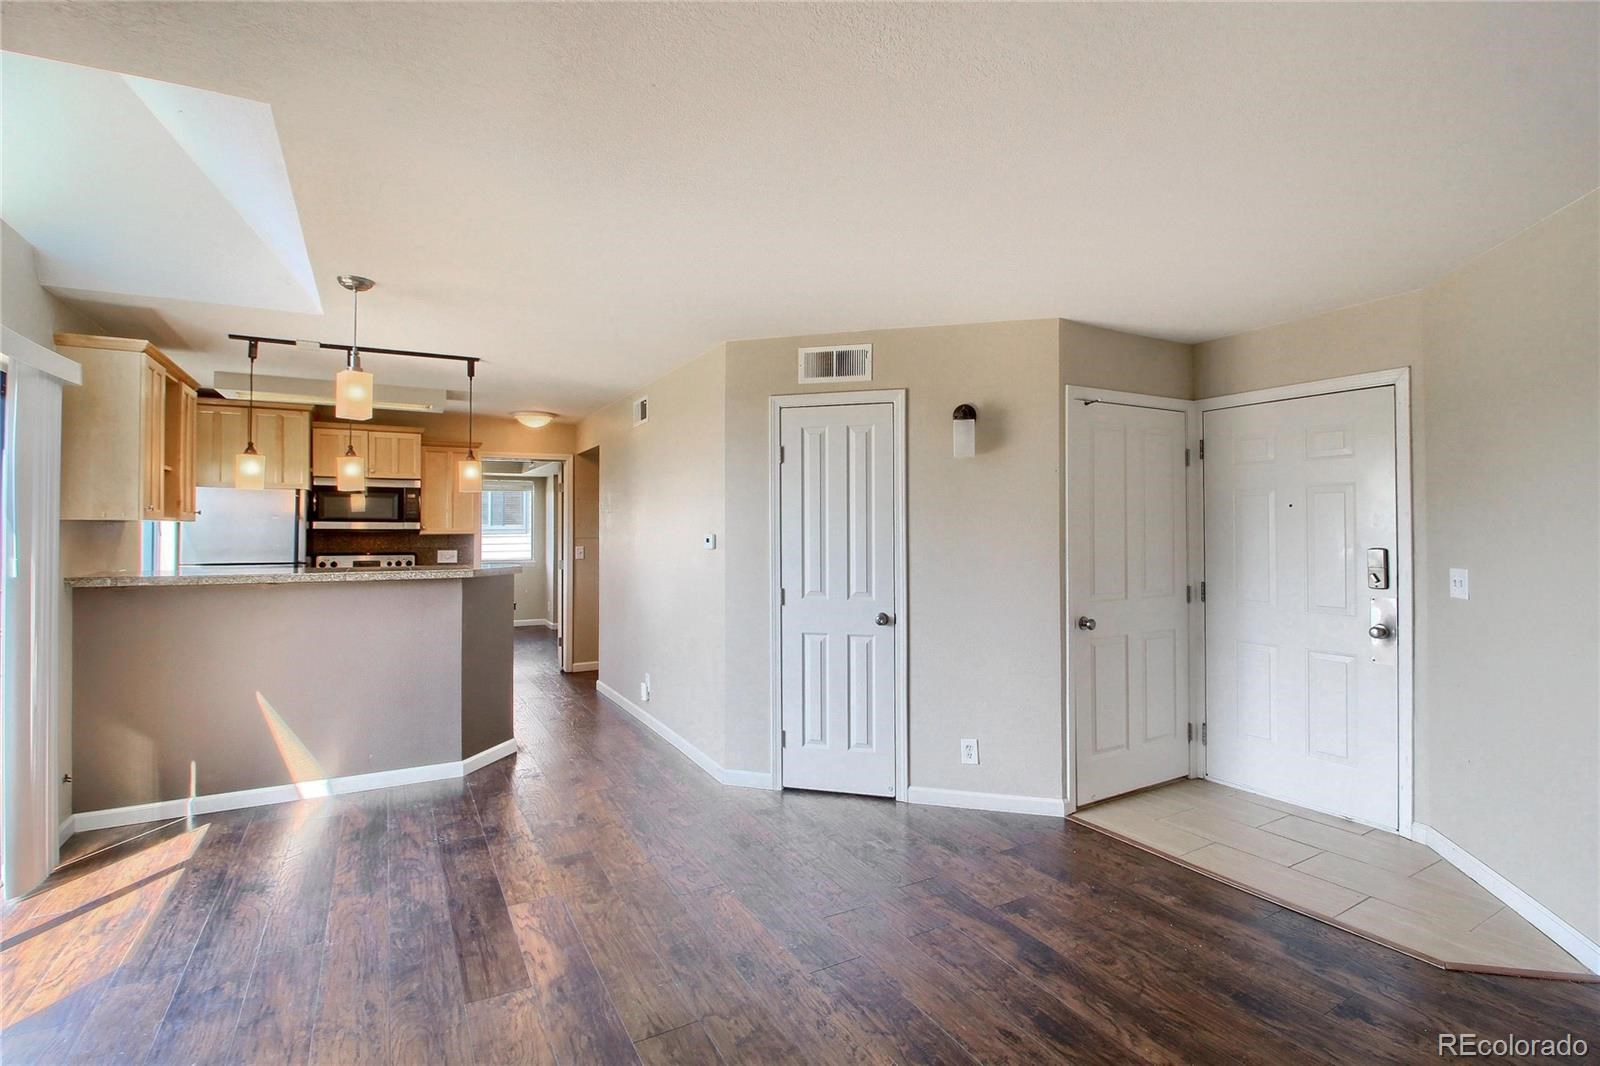 MLS# 5763768 - 14 - 6380 S Boston Street #303, Greenwood Village, CO 80111